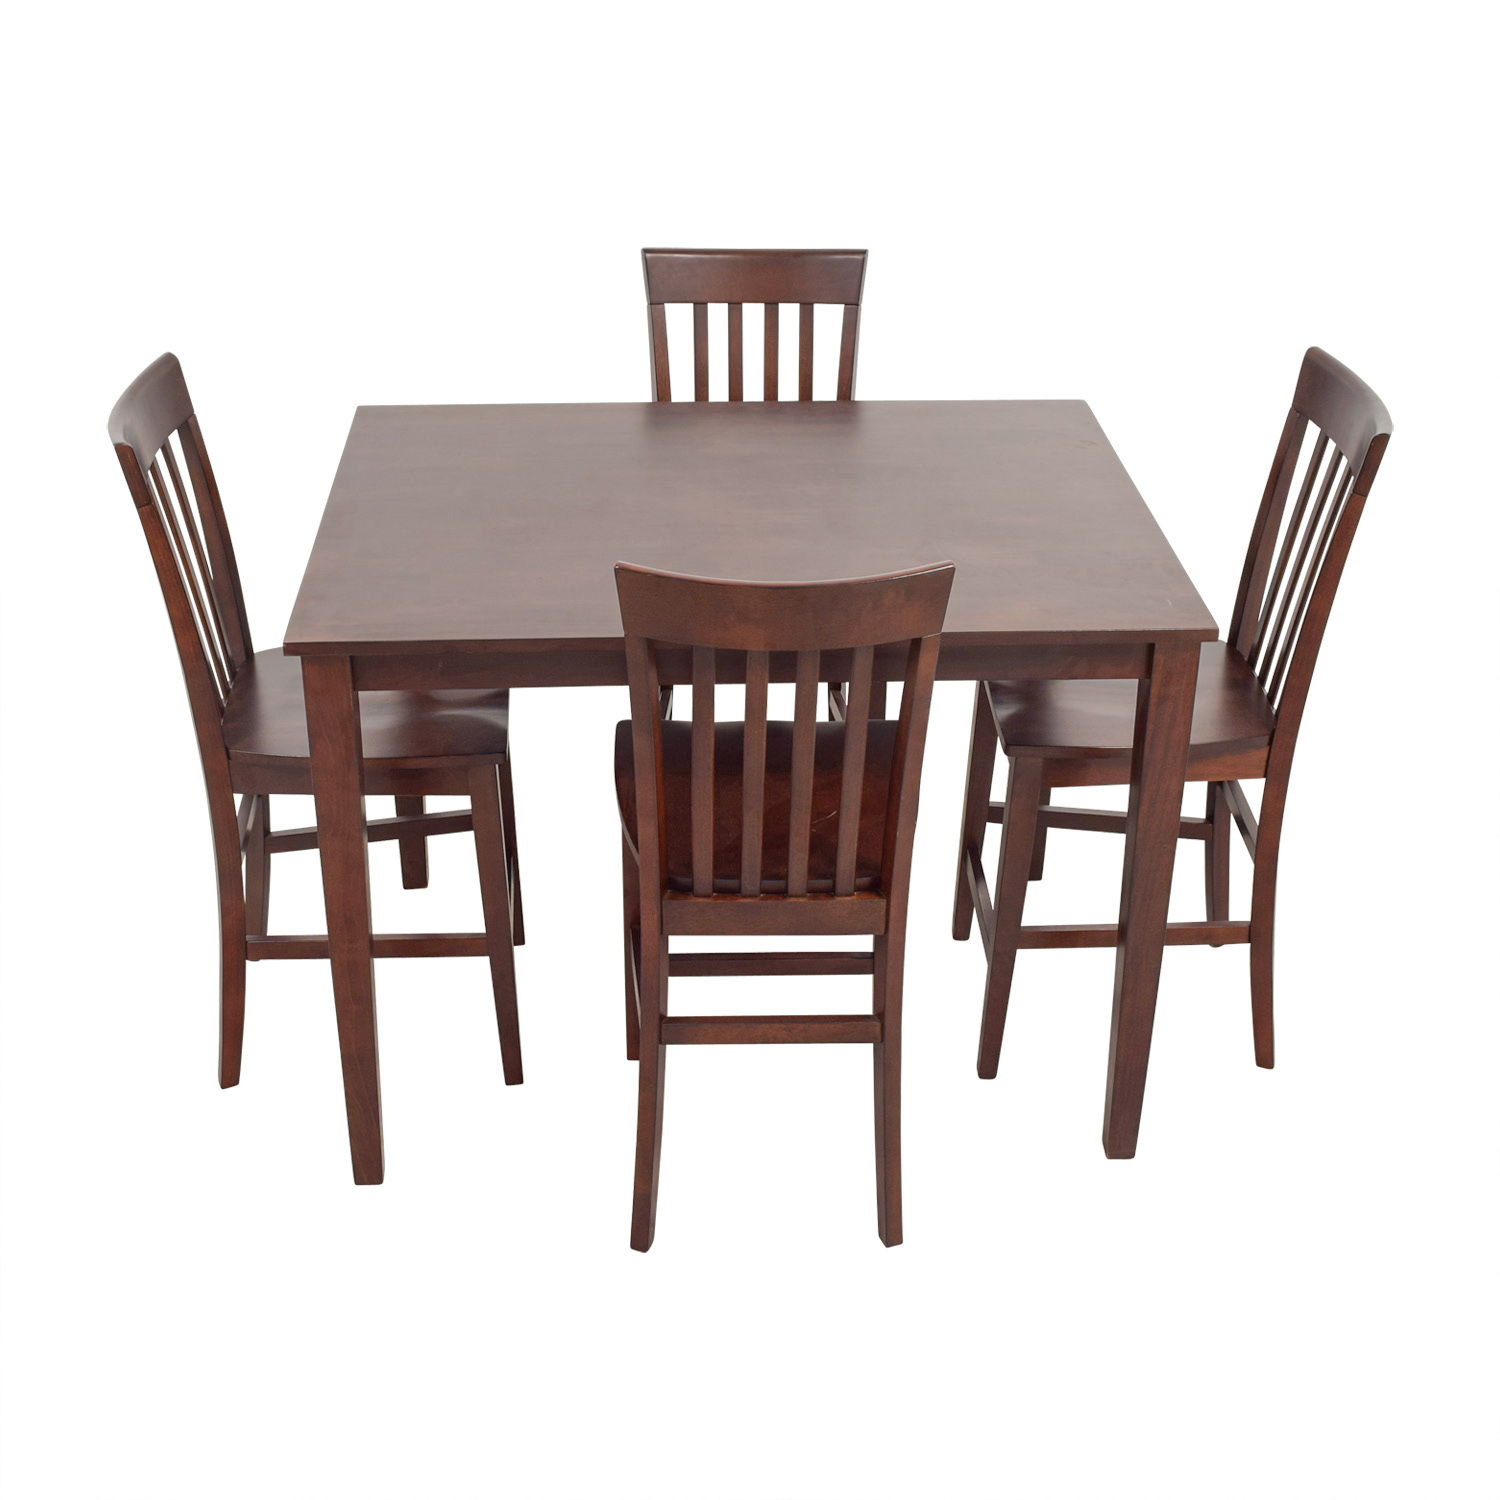 Raymour and Flanigan Raymour & Flanigan Bellanest Counter Height Dining Set for sale